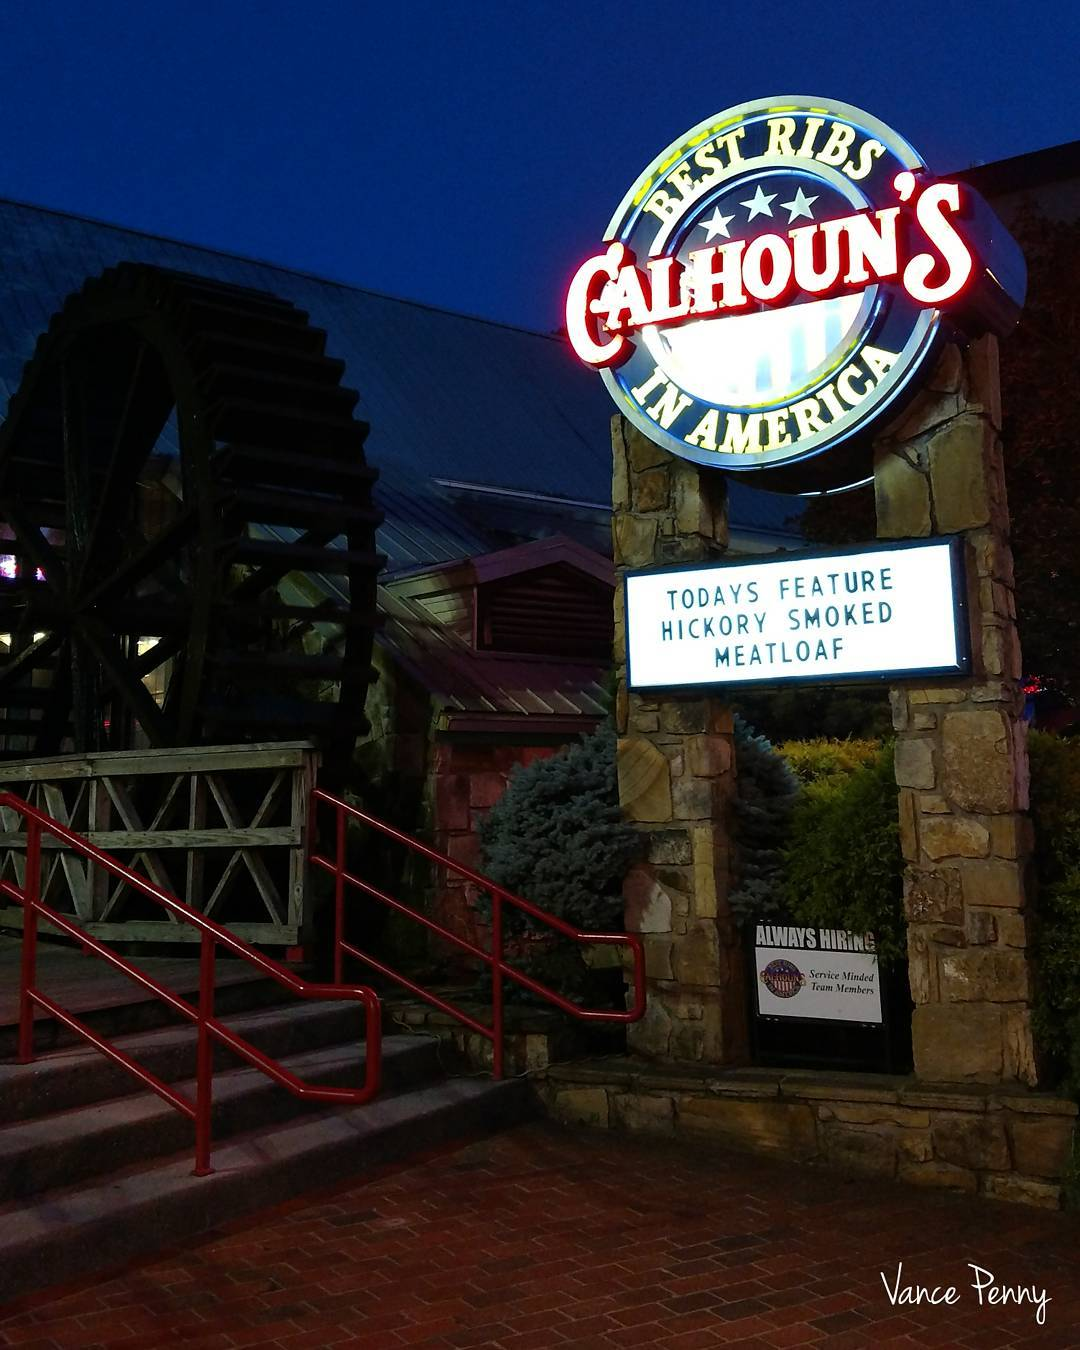 Gatlinburg Restaurants - Calhoun's Gatlinburg - Original Photo